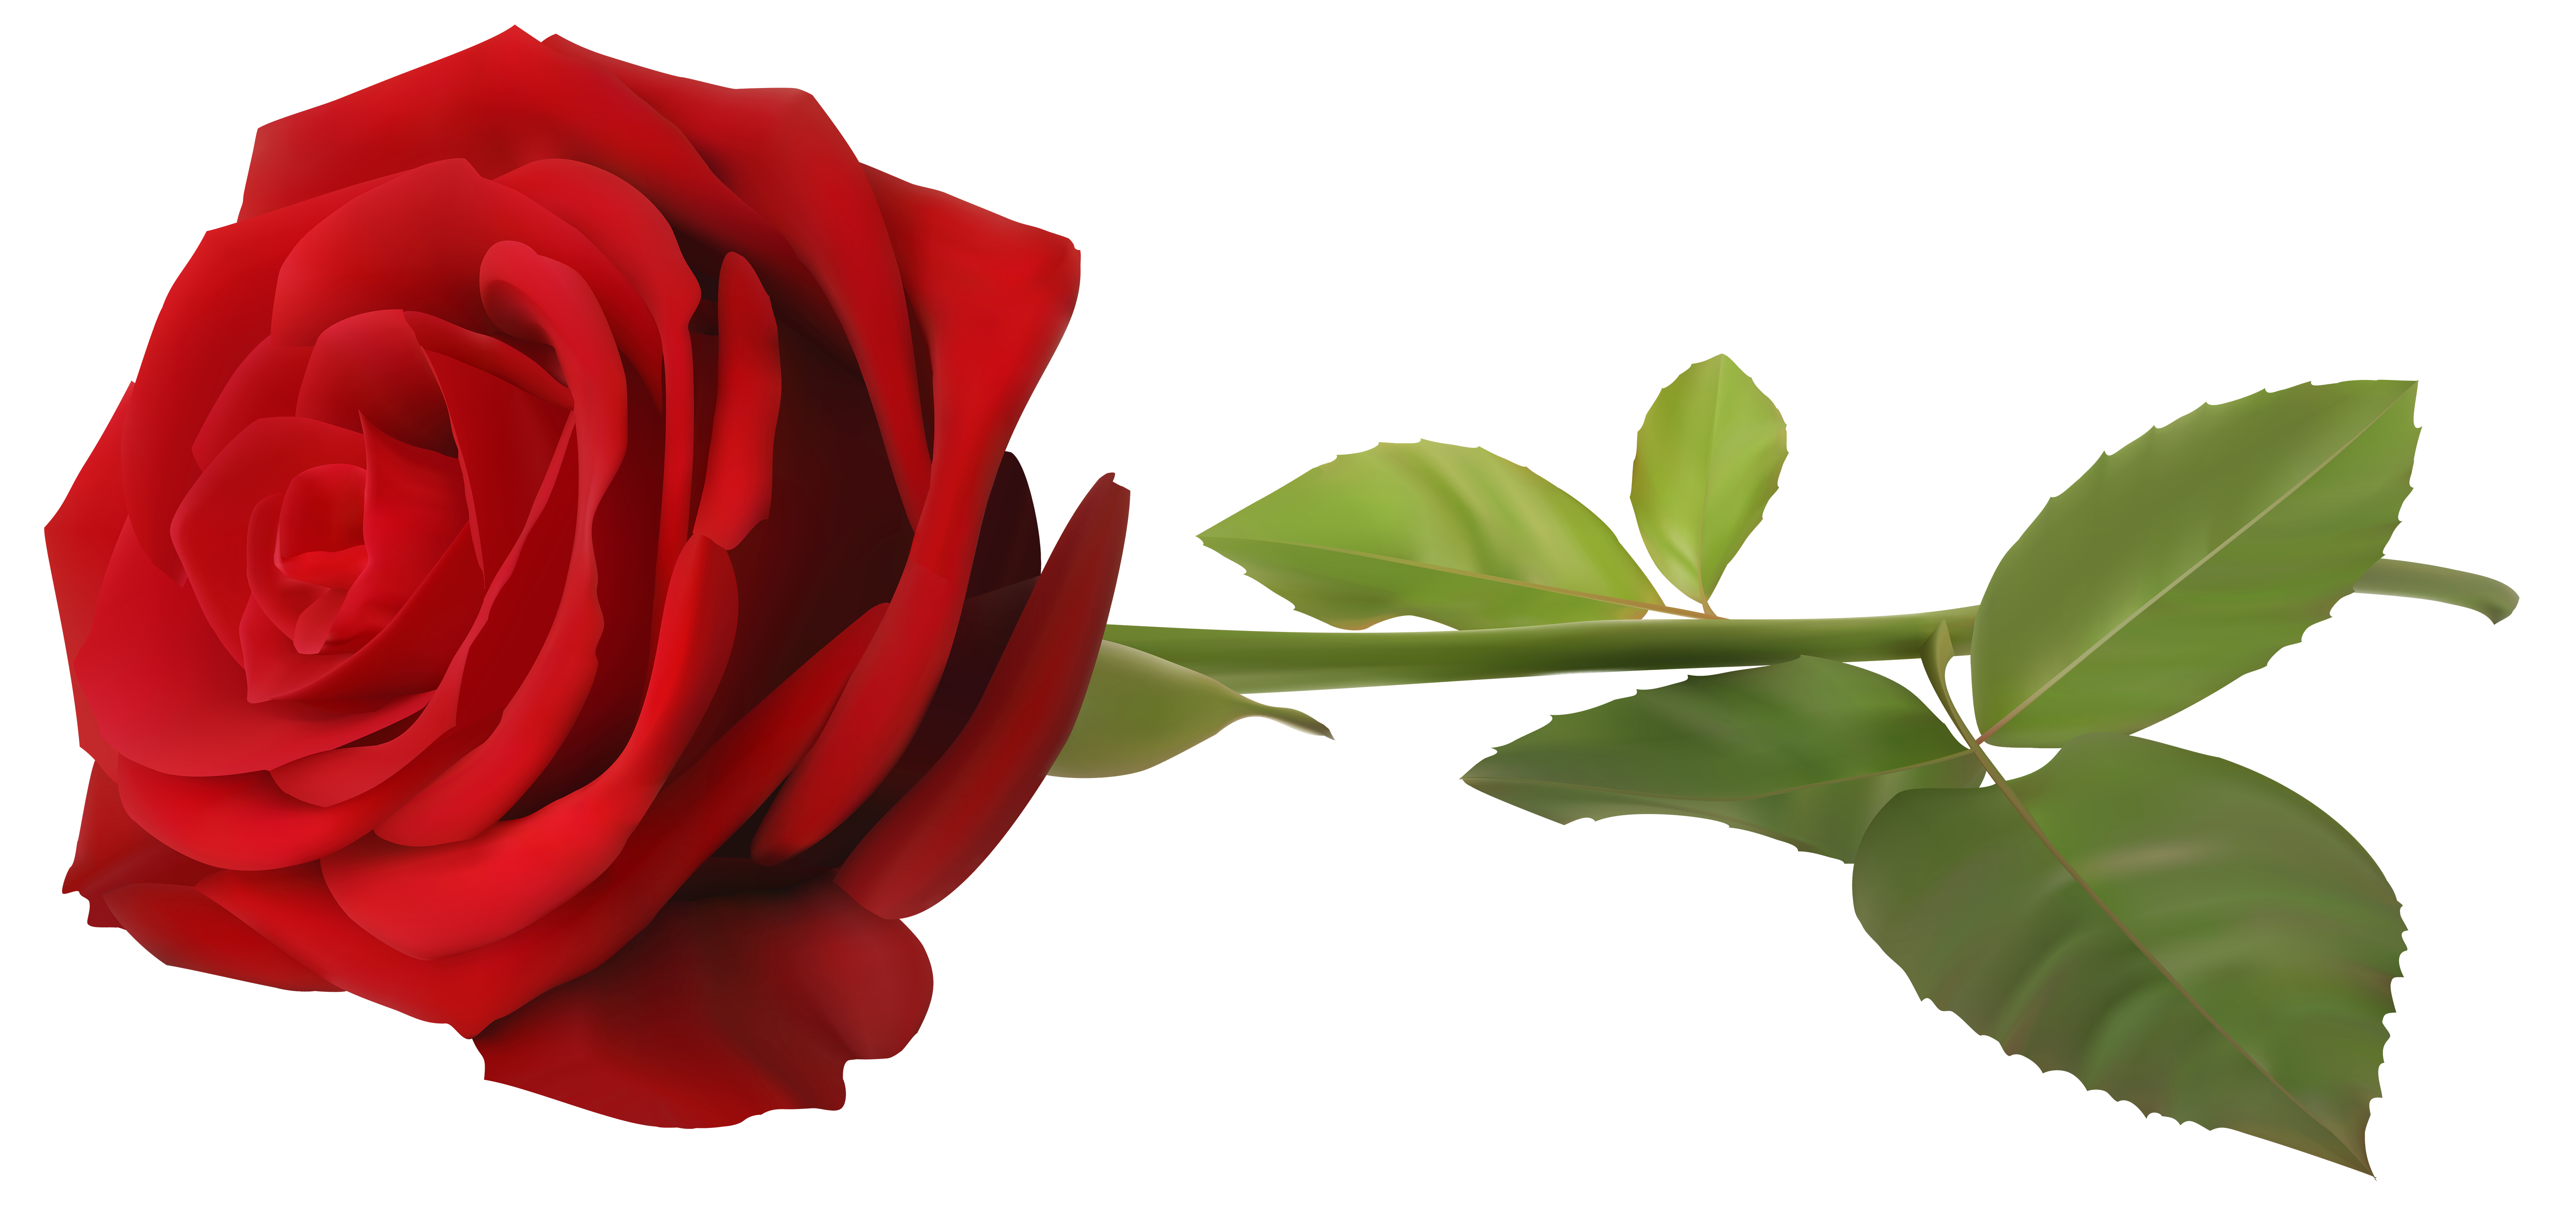 Rose transparent png. Red with stem clip